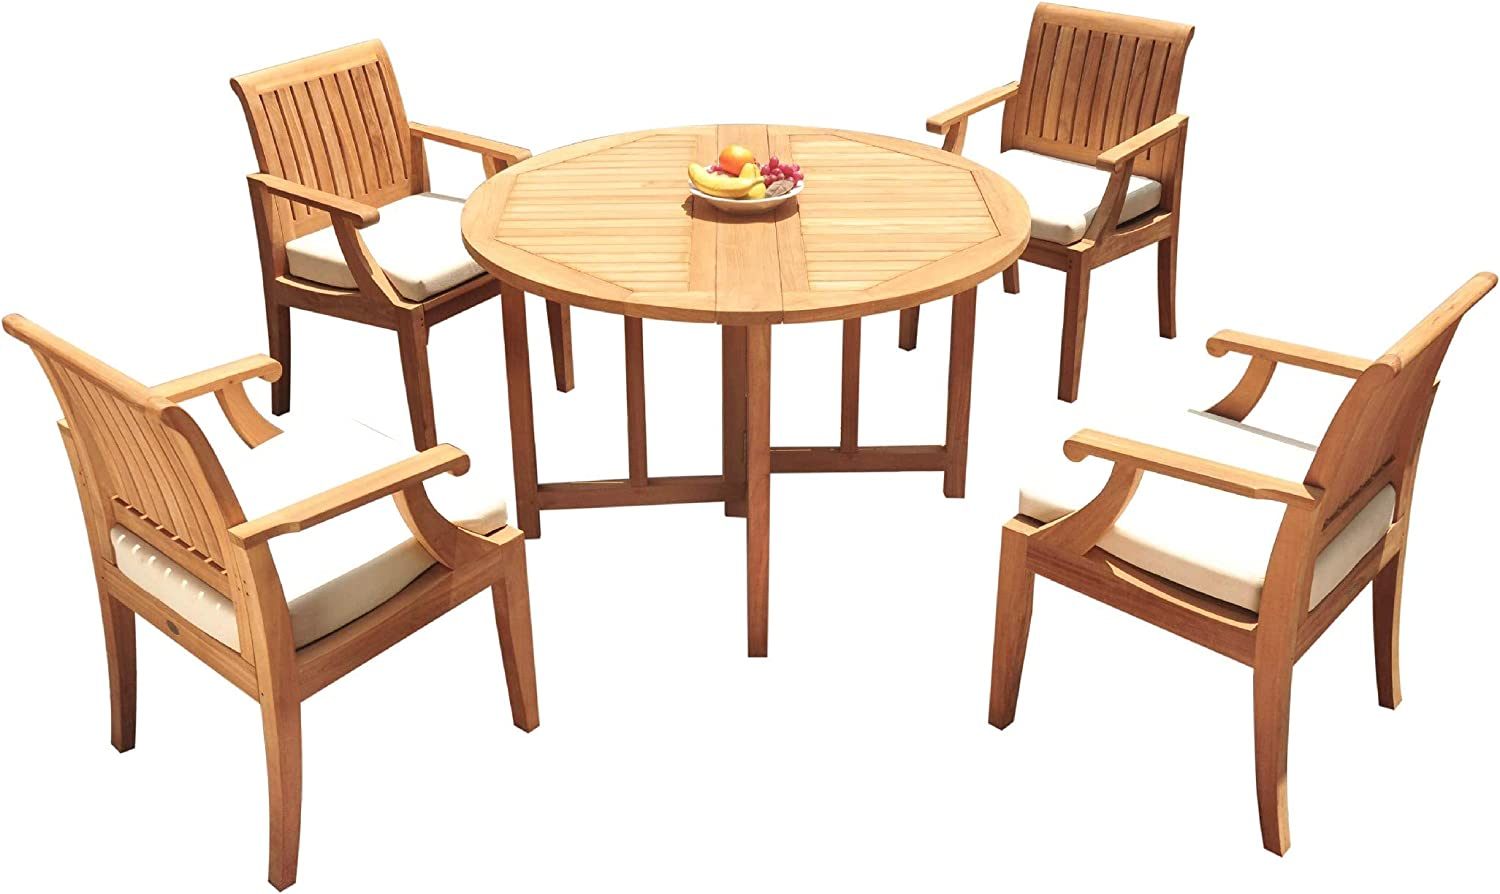 "4 Seats 5 Pcs Grade-A Teak Wood Dining Set: 48"" Round Butterfly Table and 4 Lagos Arm Chairs #11LG0105 71sZiJmIKHLSL1500_"